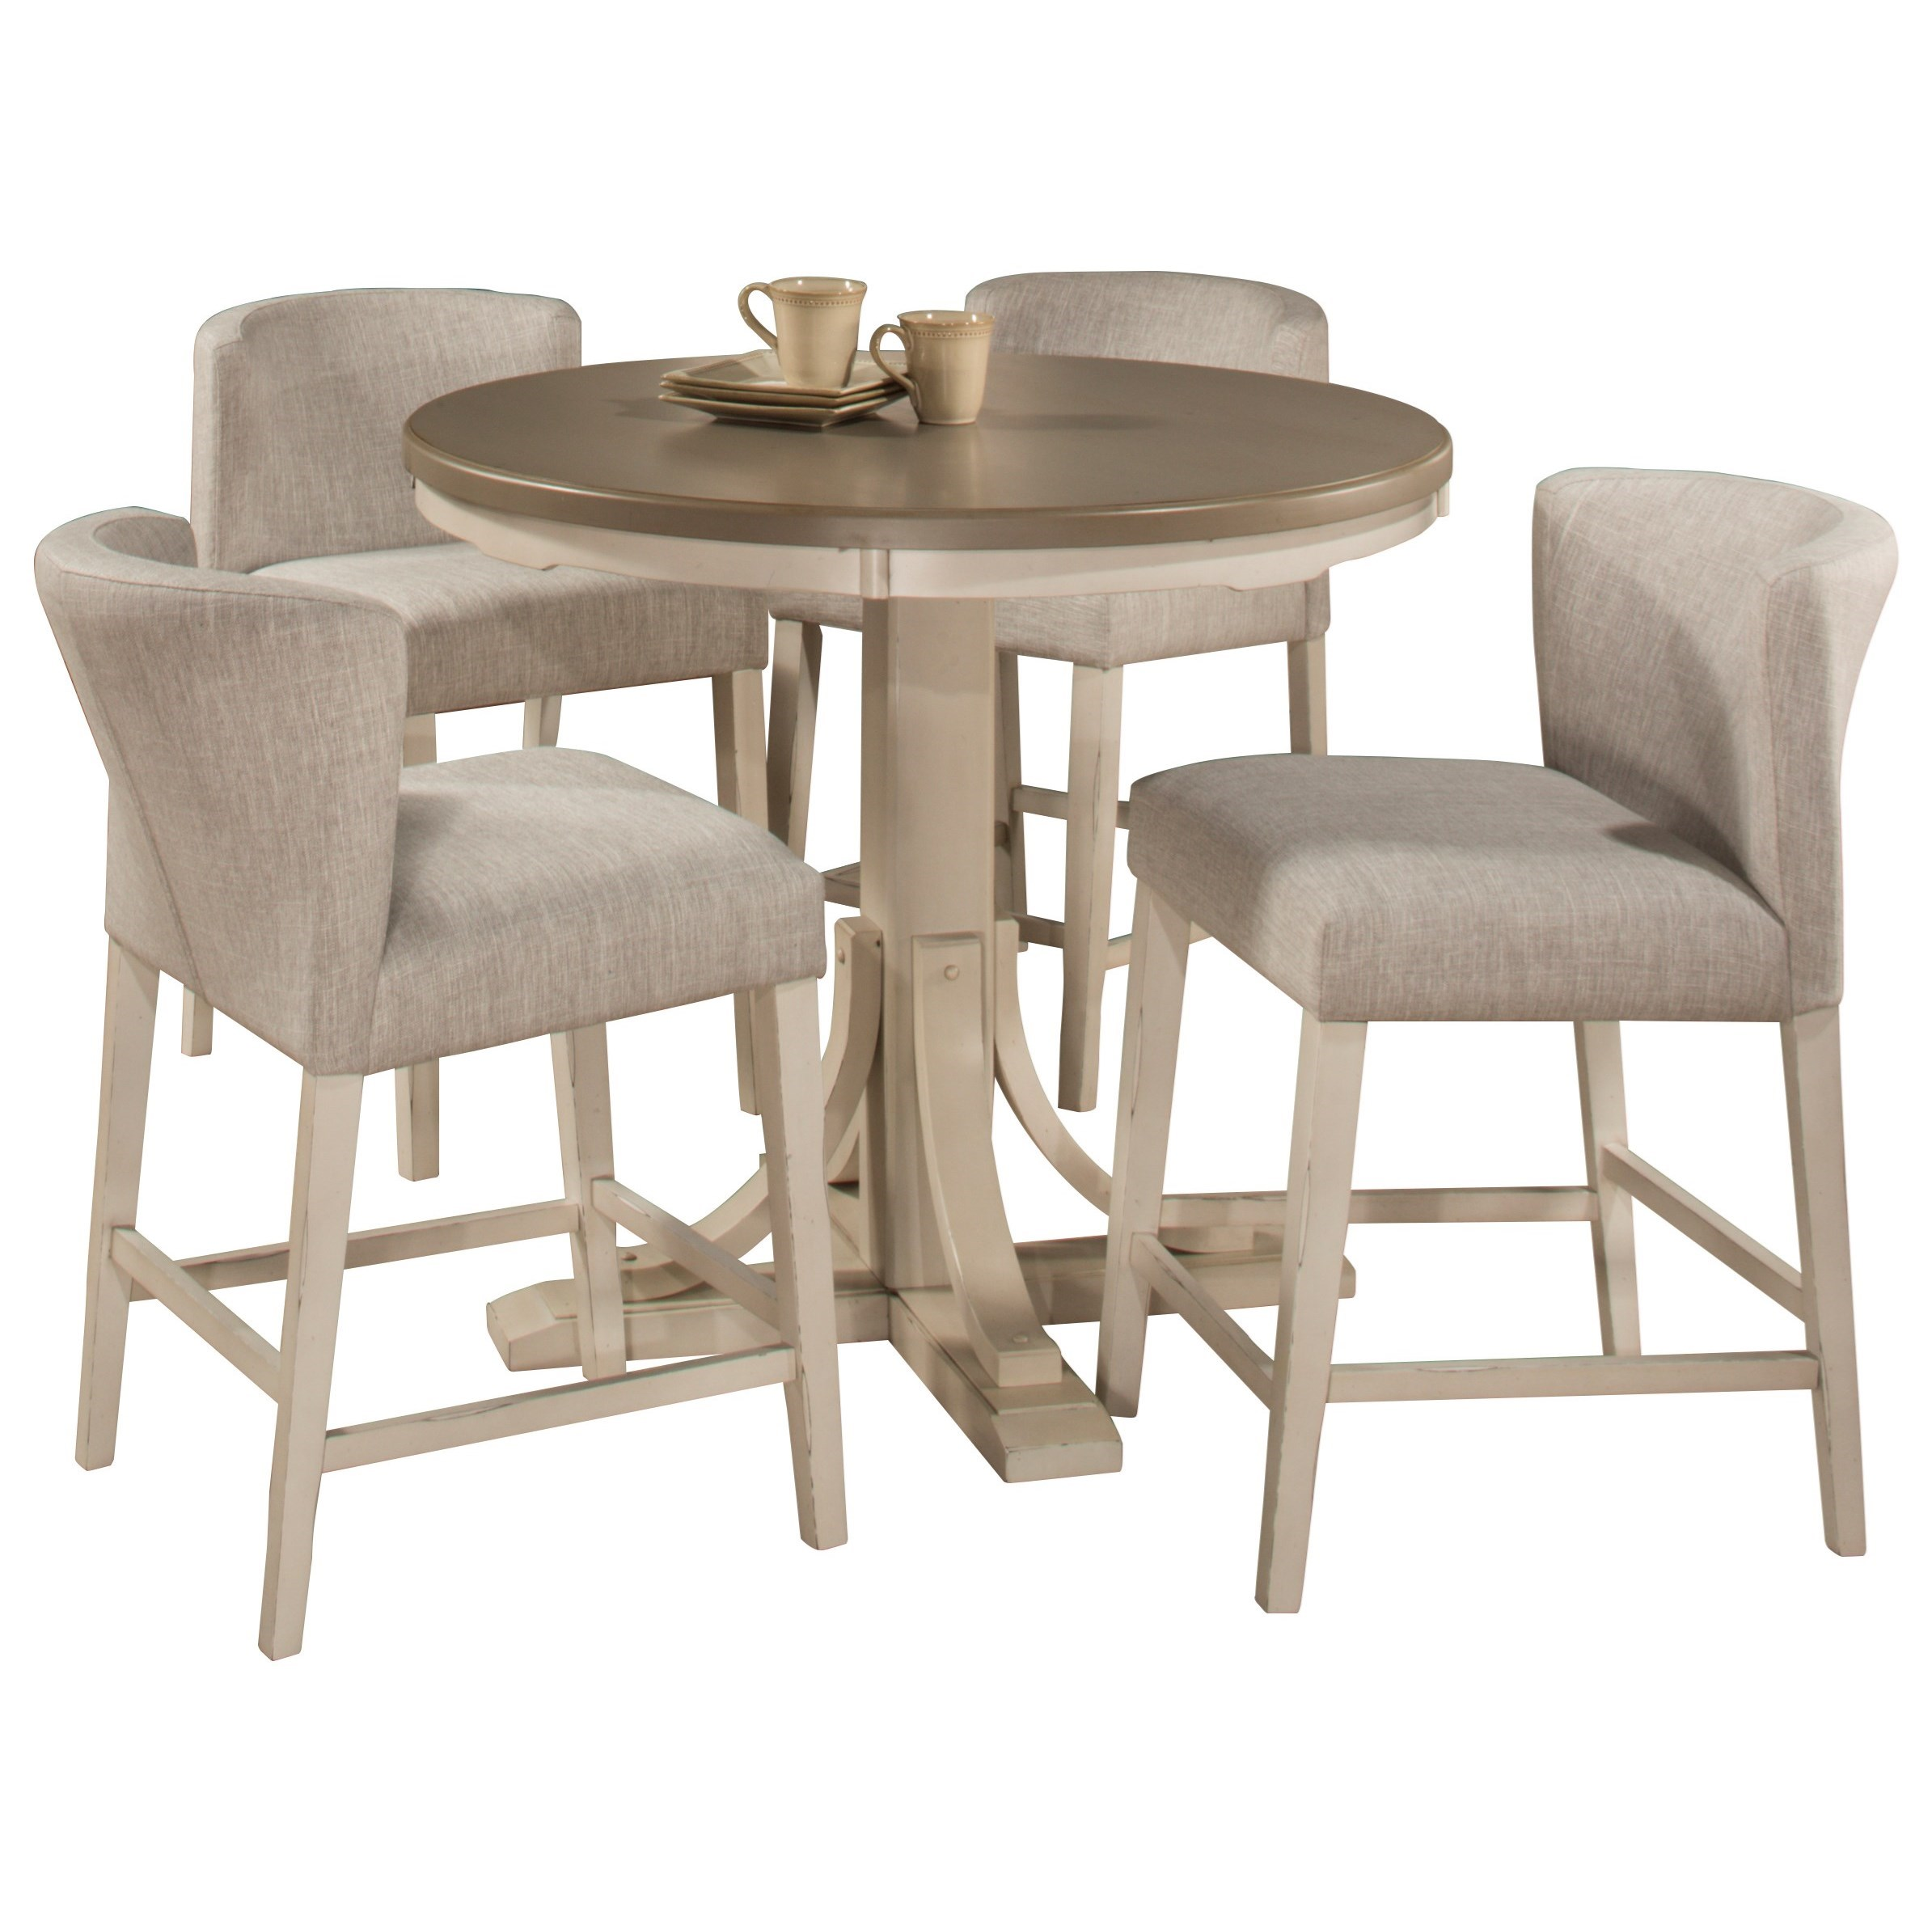 Clarion 5-Piece Counter Height Dining Set w/ Wing Ch by Hillsdale at Prime Brothers Furniture